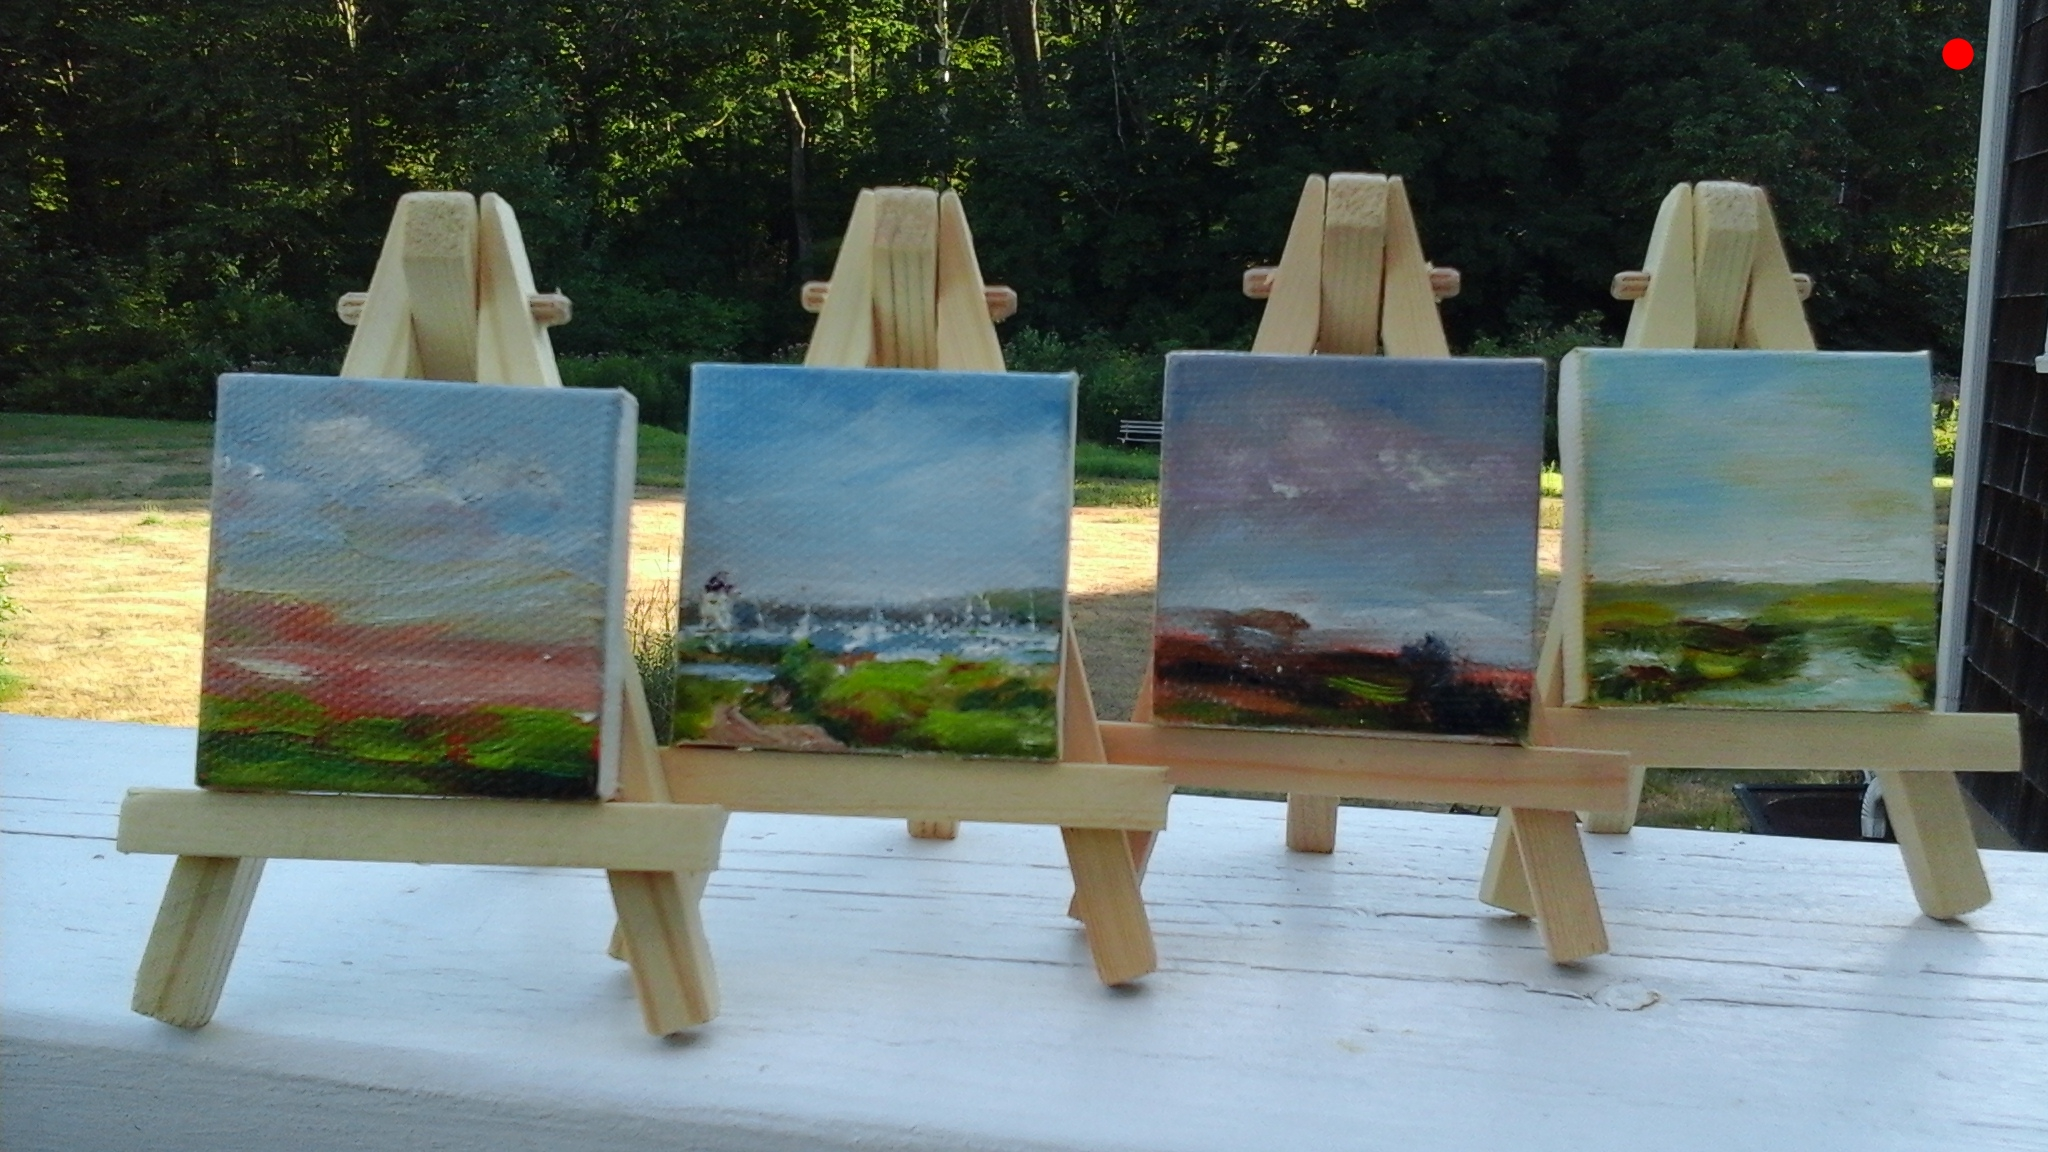 "Copy of Copy of Micro Minis - 2"" x 2"" Oil on canvas with easel.  L to R, Eureka (Sold), Prose (Sold), Heal (Sold), The Big Picture (sold)"